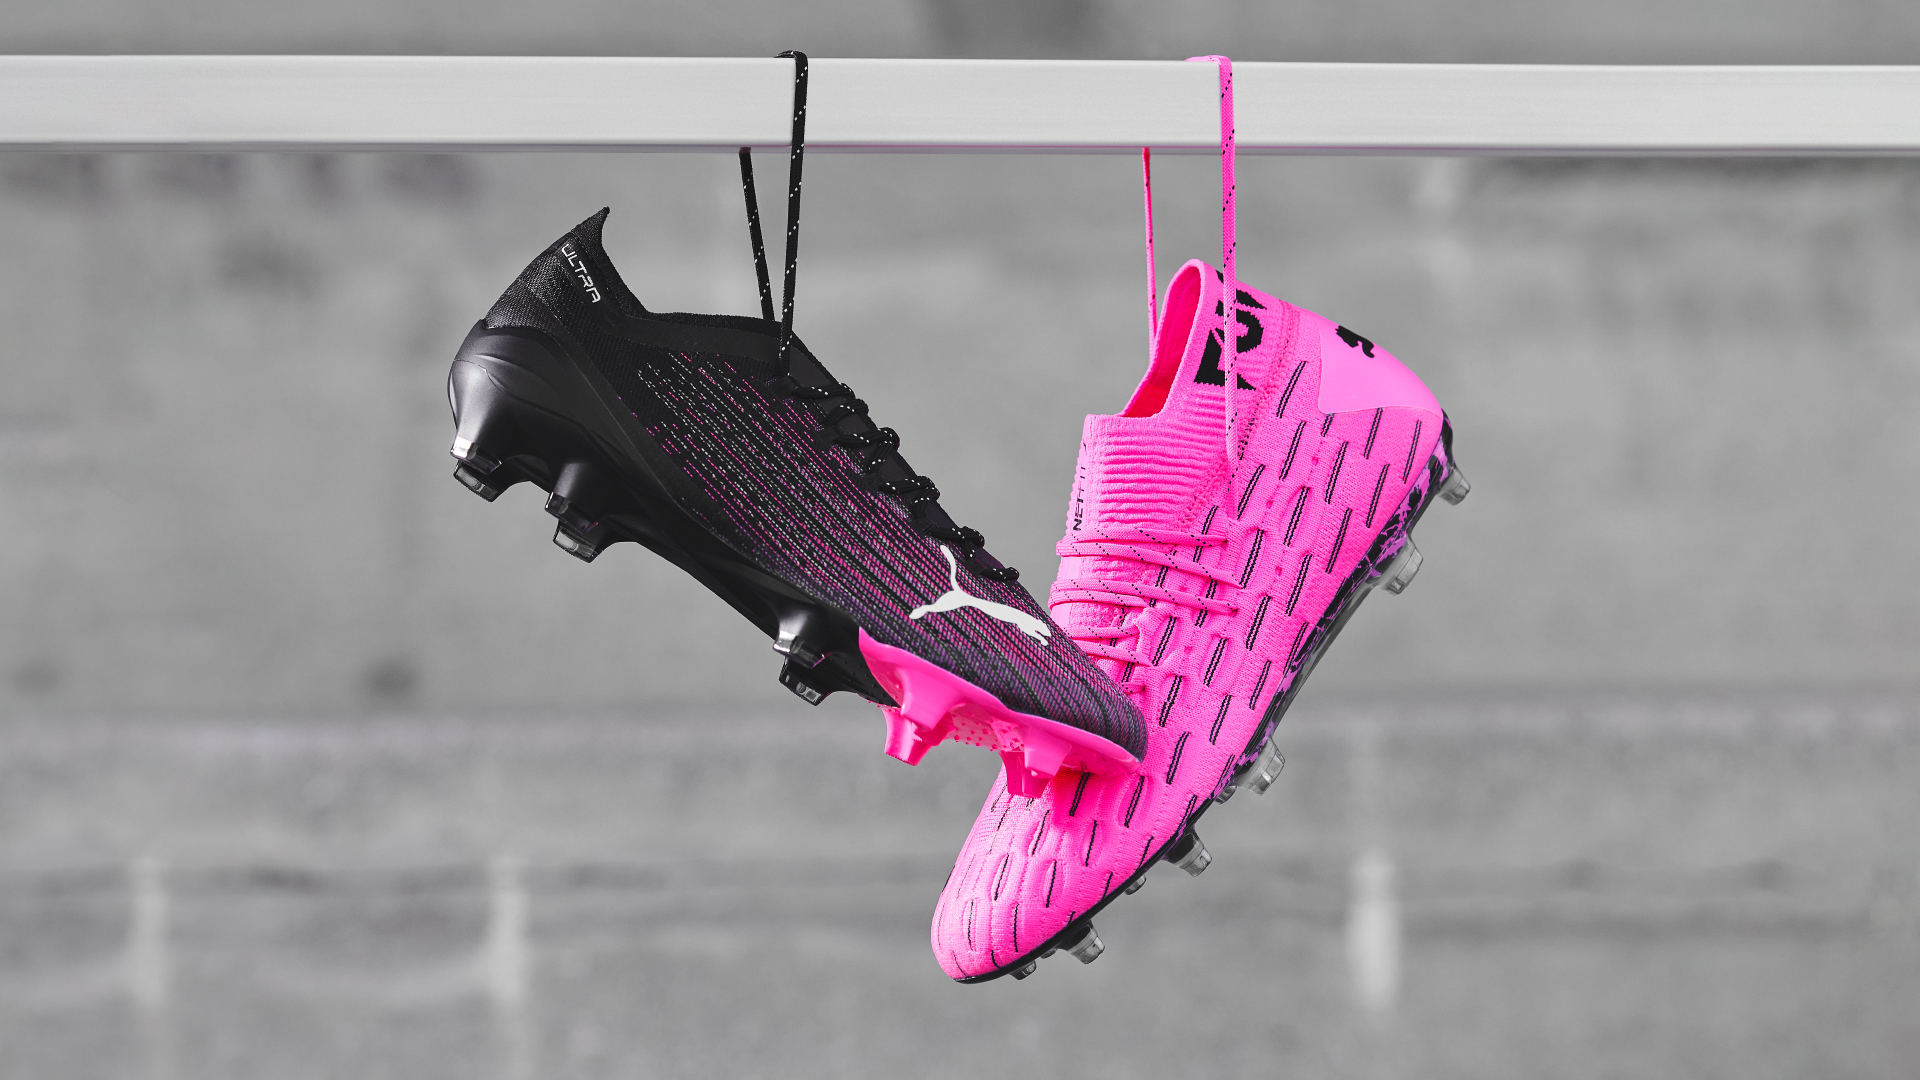 Puma Ultra 1.1 black boot hanging off crossbar with a pink Puma Future 6.1 boot.